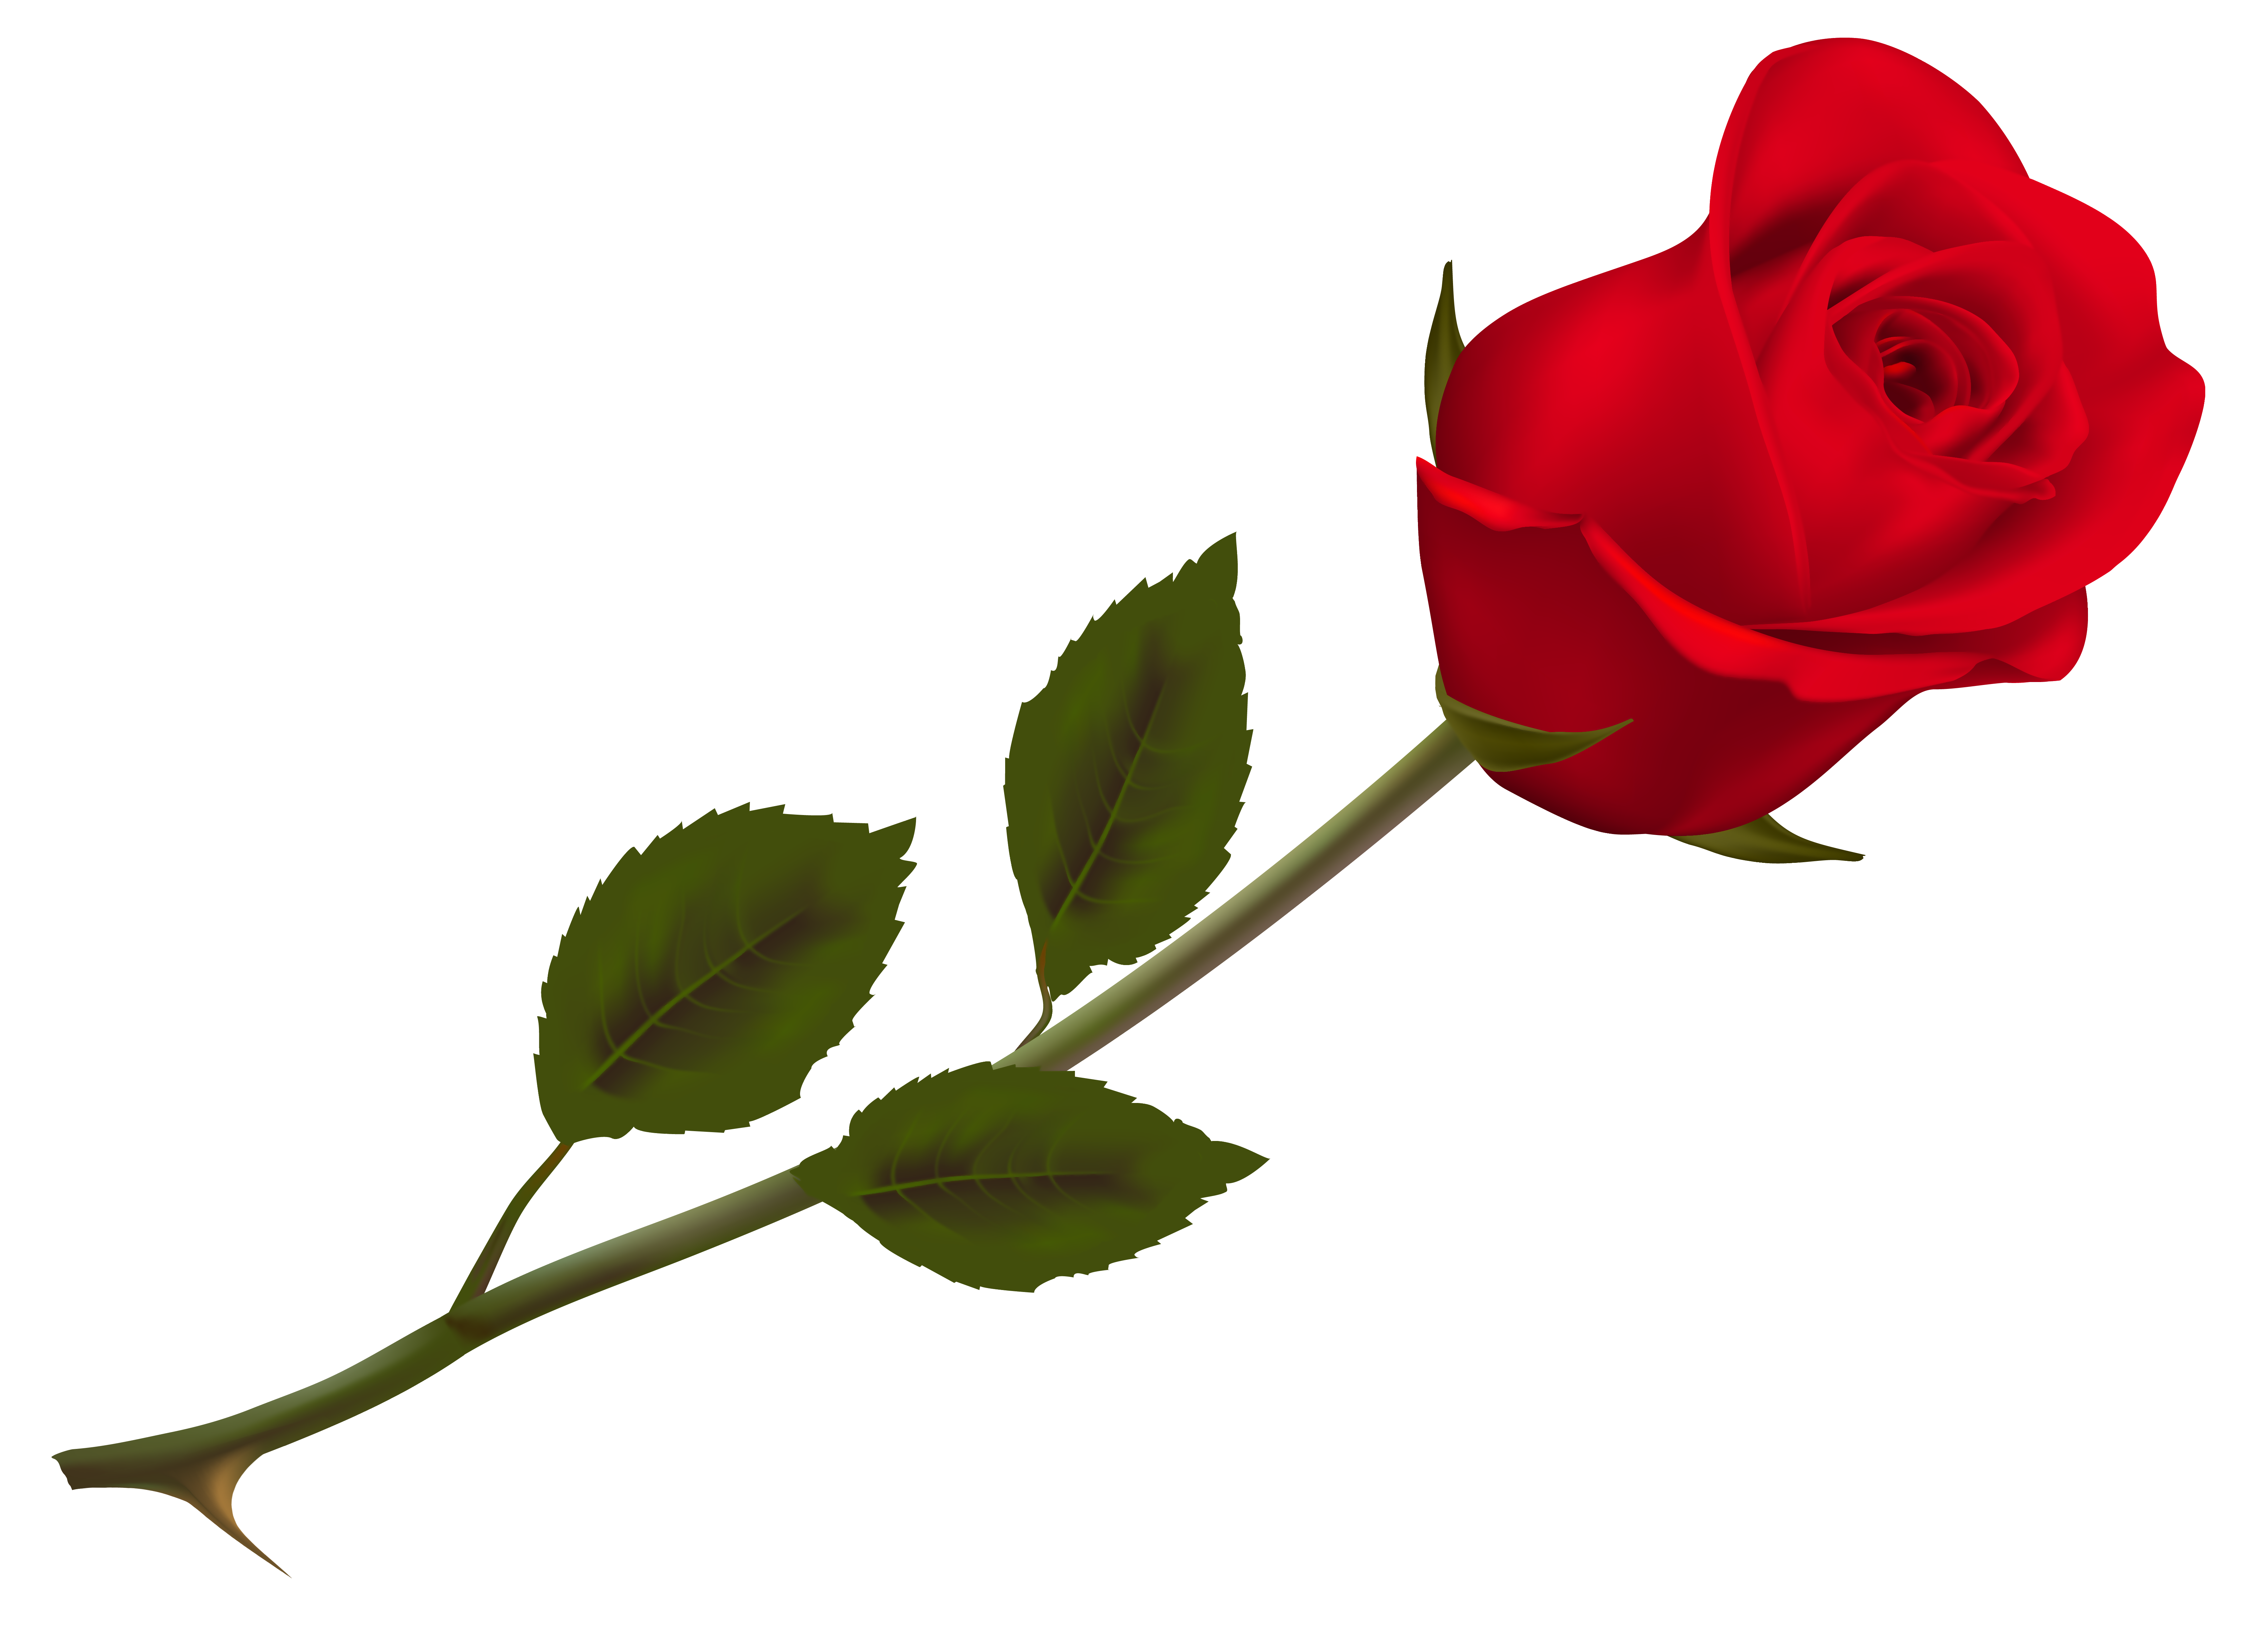 Transparent Beautiful Red Rose PNG Picture.